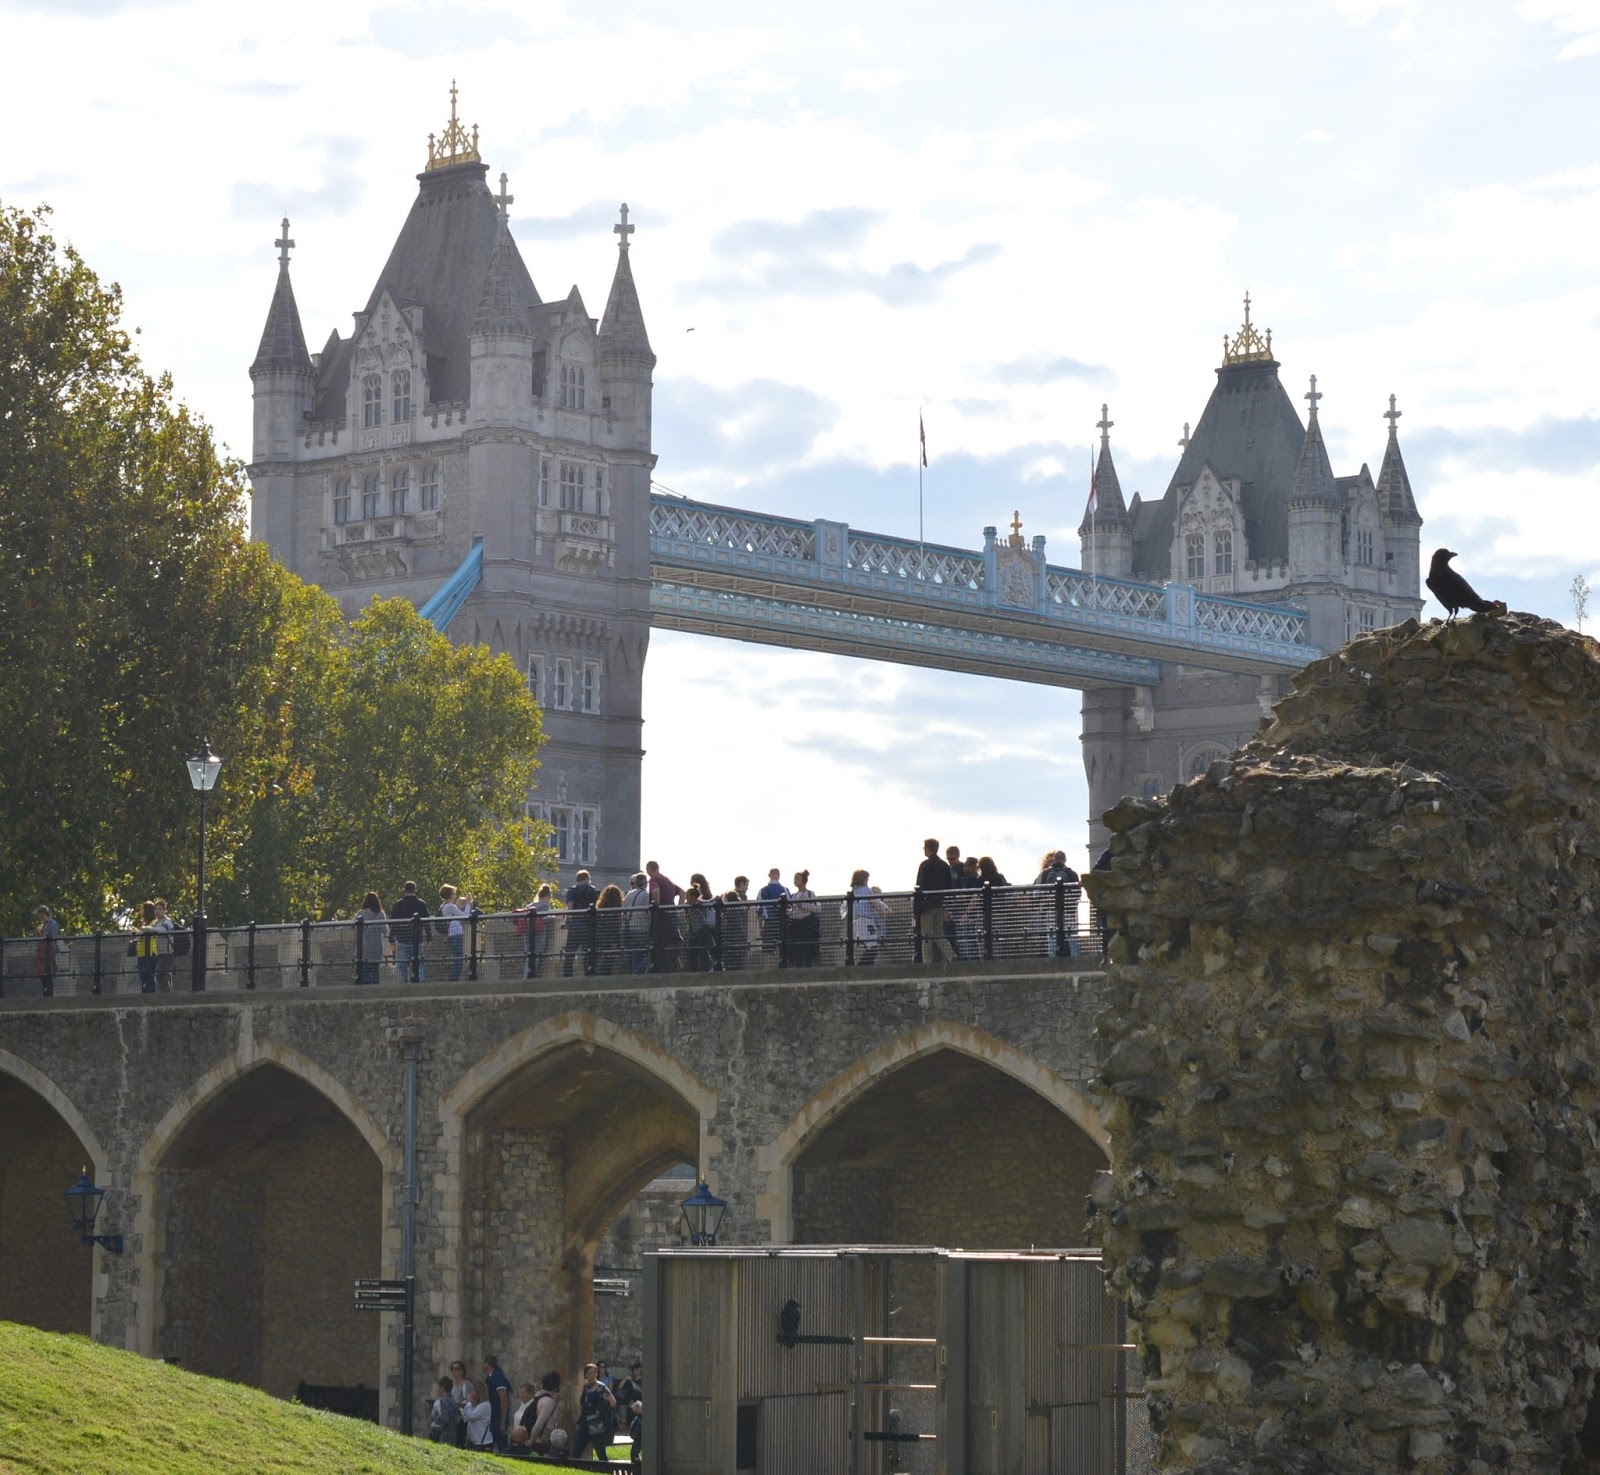 The LNER Family Return Ticket Newcastle-London. #OurLNER #FamilyReturn  - view of Tower bridge from the Tower of London